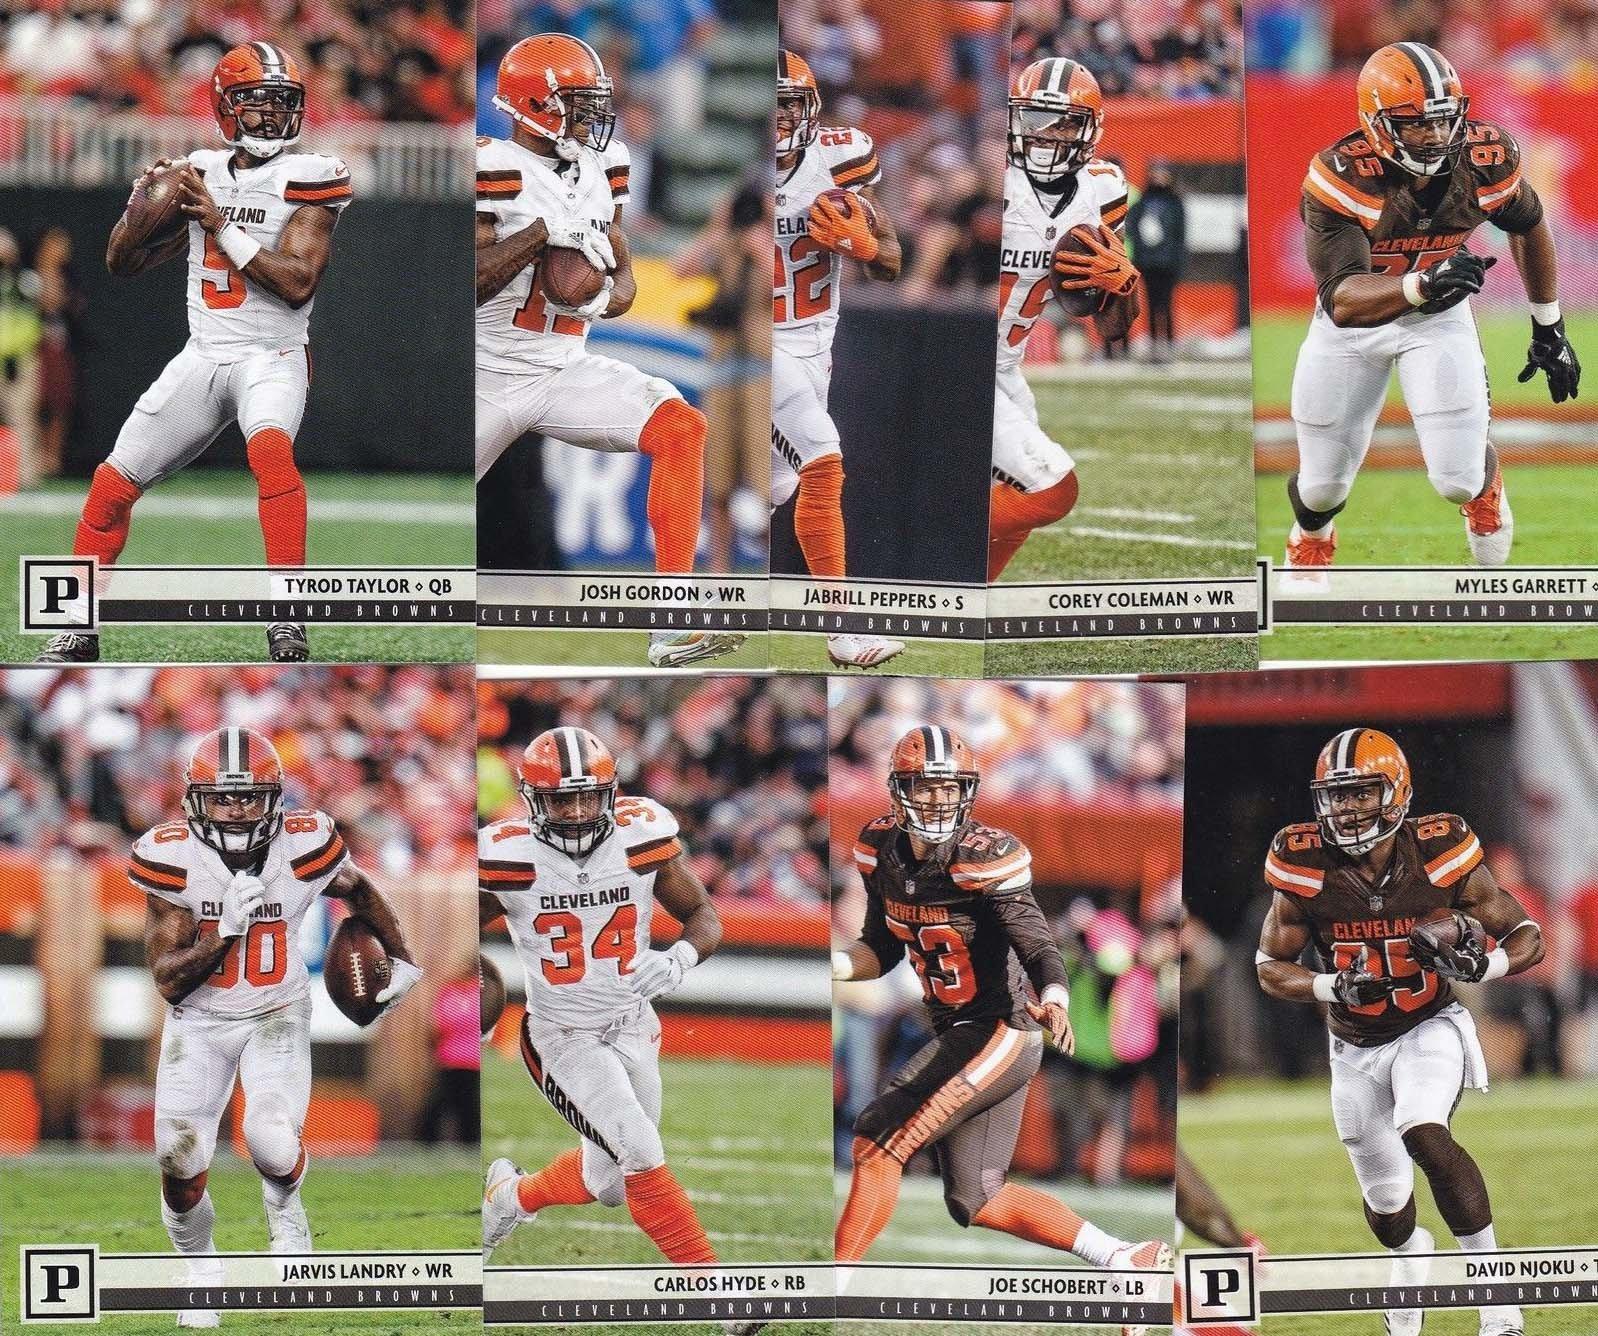 Cleveland Browns 2018 Panini Factory Sealed NFL Football Complete Mint 14 Card Team Set with Rookie Cards of Baker Mayfield and Denzel Ward plus